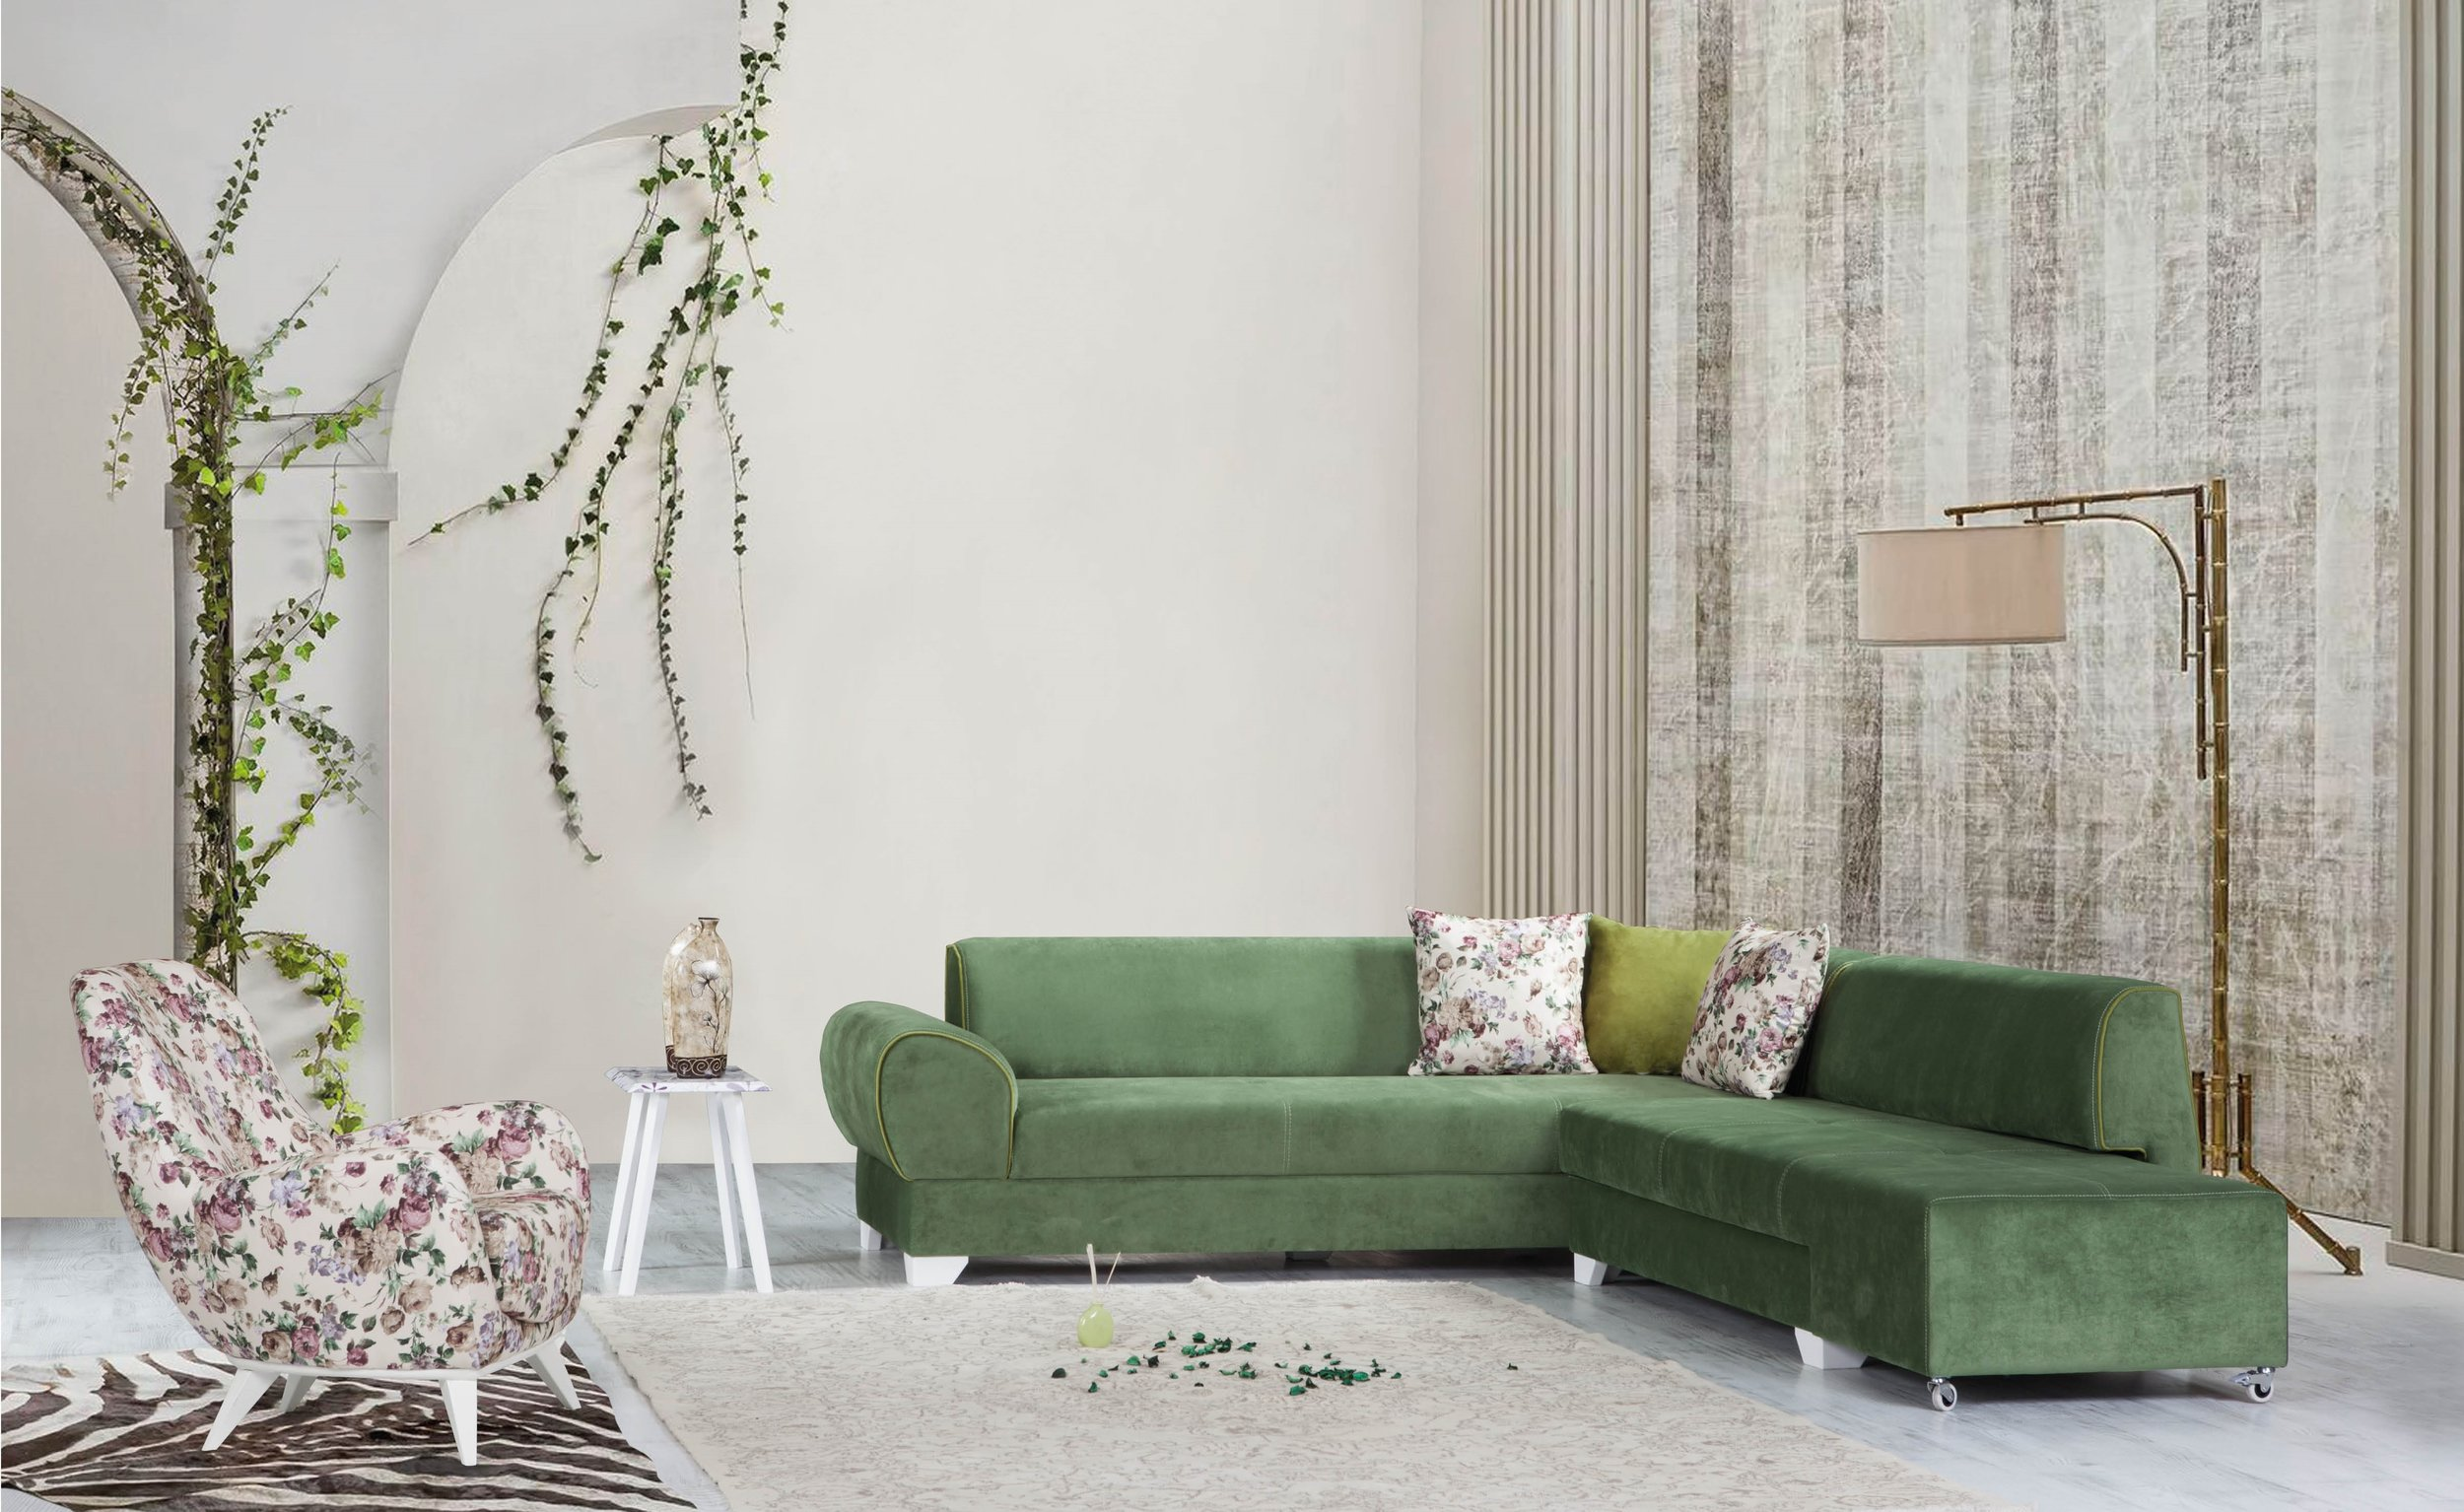 Baca Exclusive Furniture and Homeware in Catford South London Club Card 3.jpg